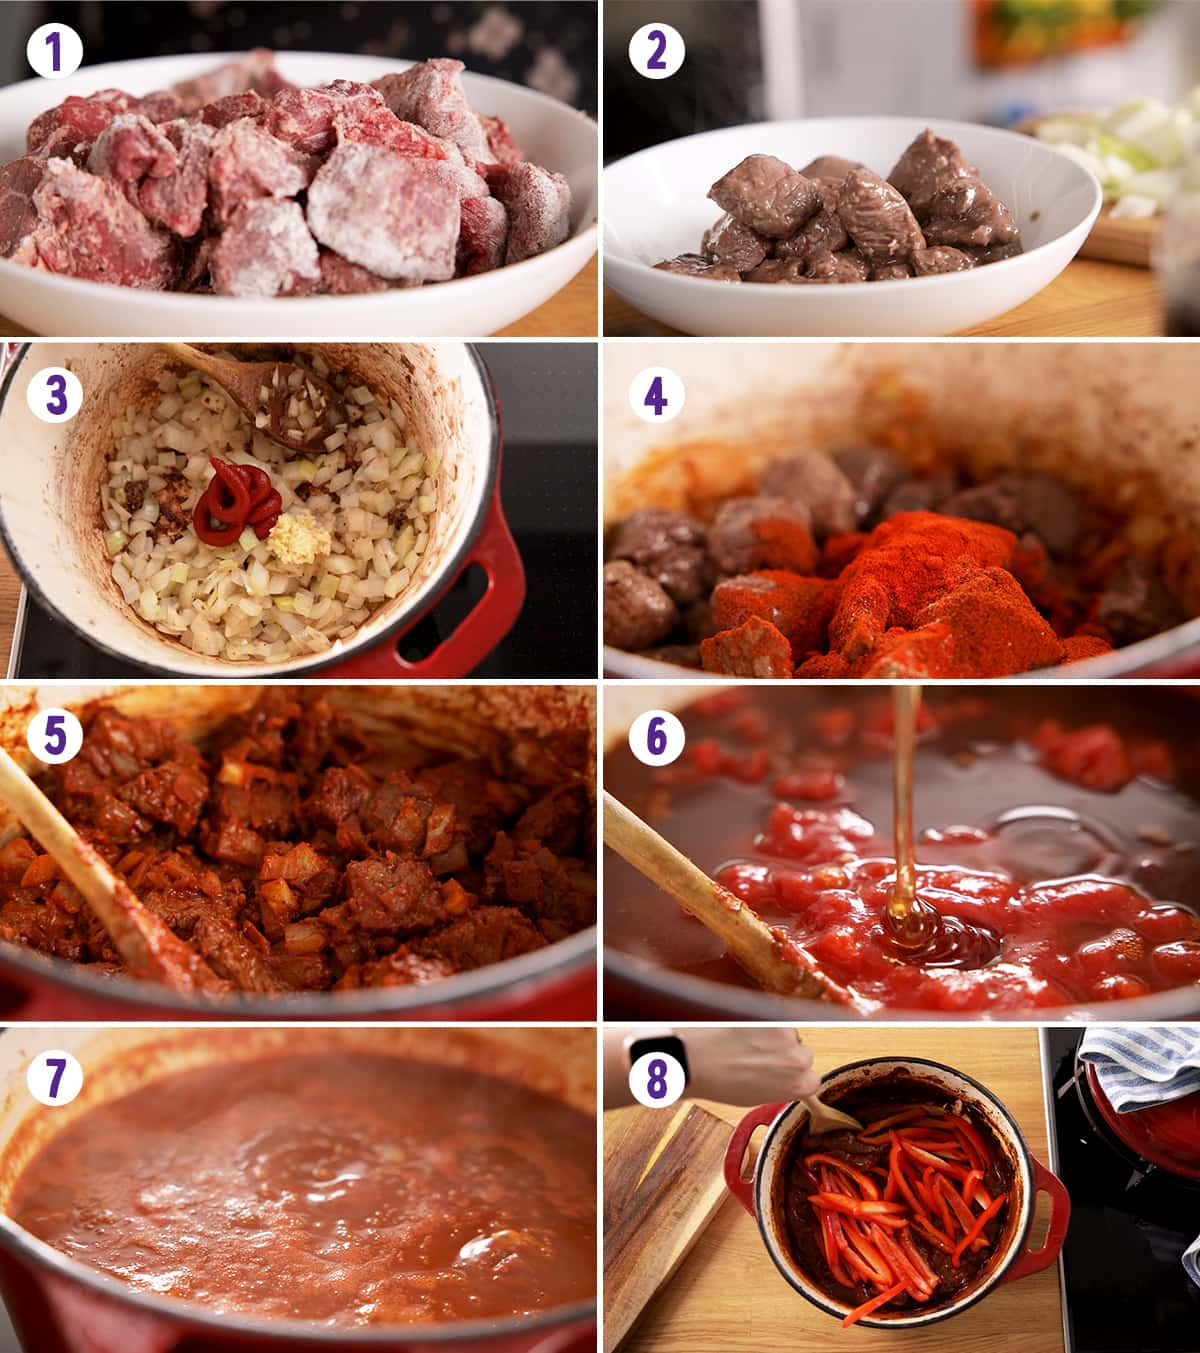 8 image collage showing how to make beef goulash